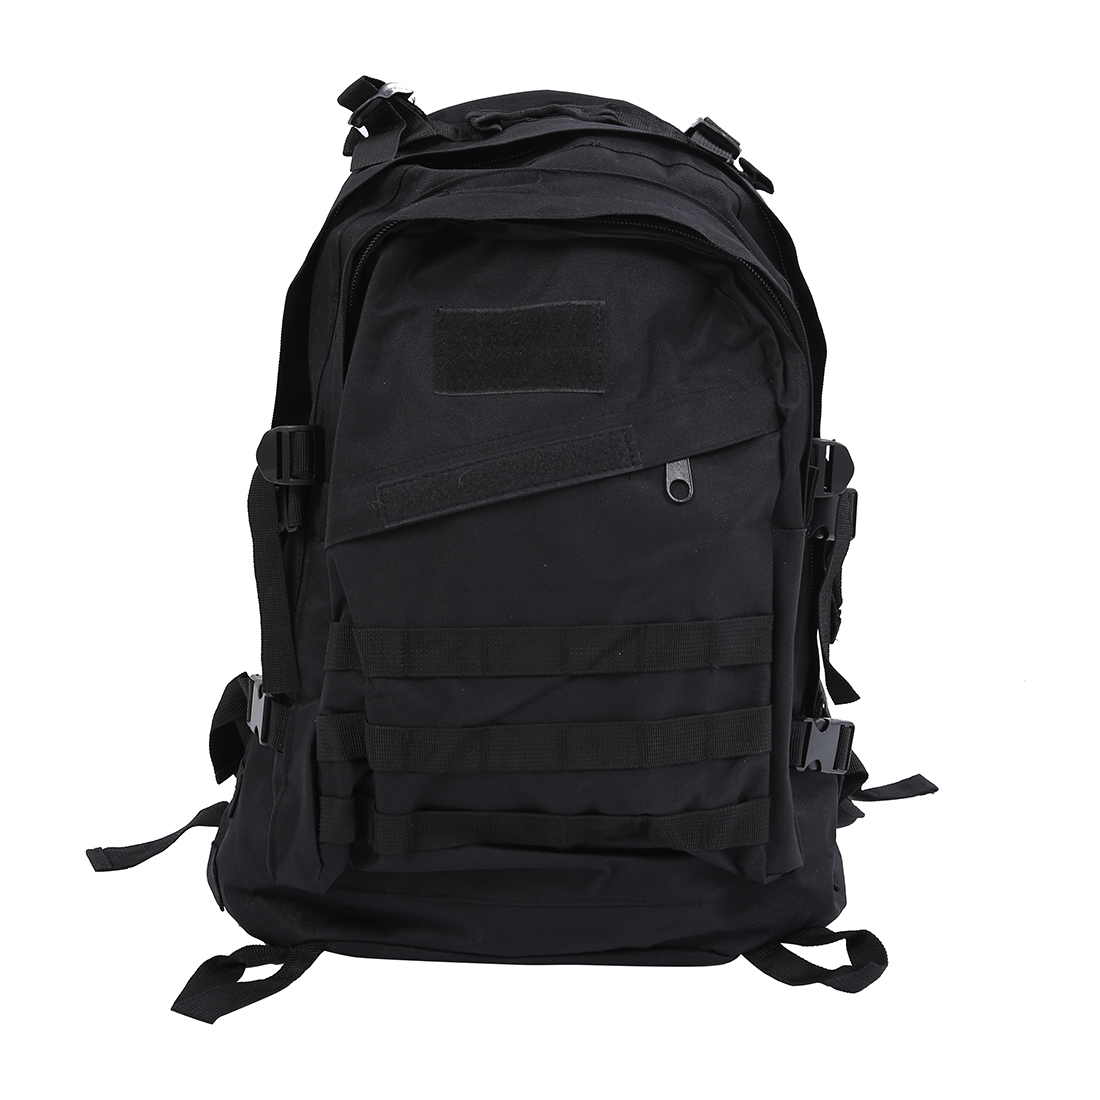 Outdoor 40L 600D Waterproof Oxford Cloth Military Rucksack Tactical Backpack Bag ACU Camouflage Sports Travelling Hiking Bag churrasqueira para fogão